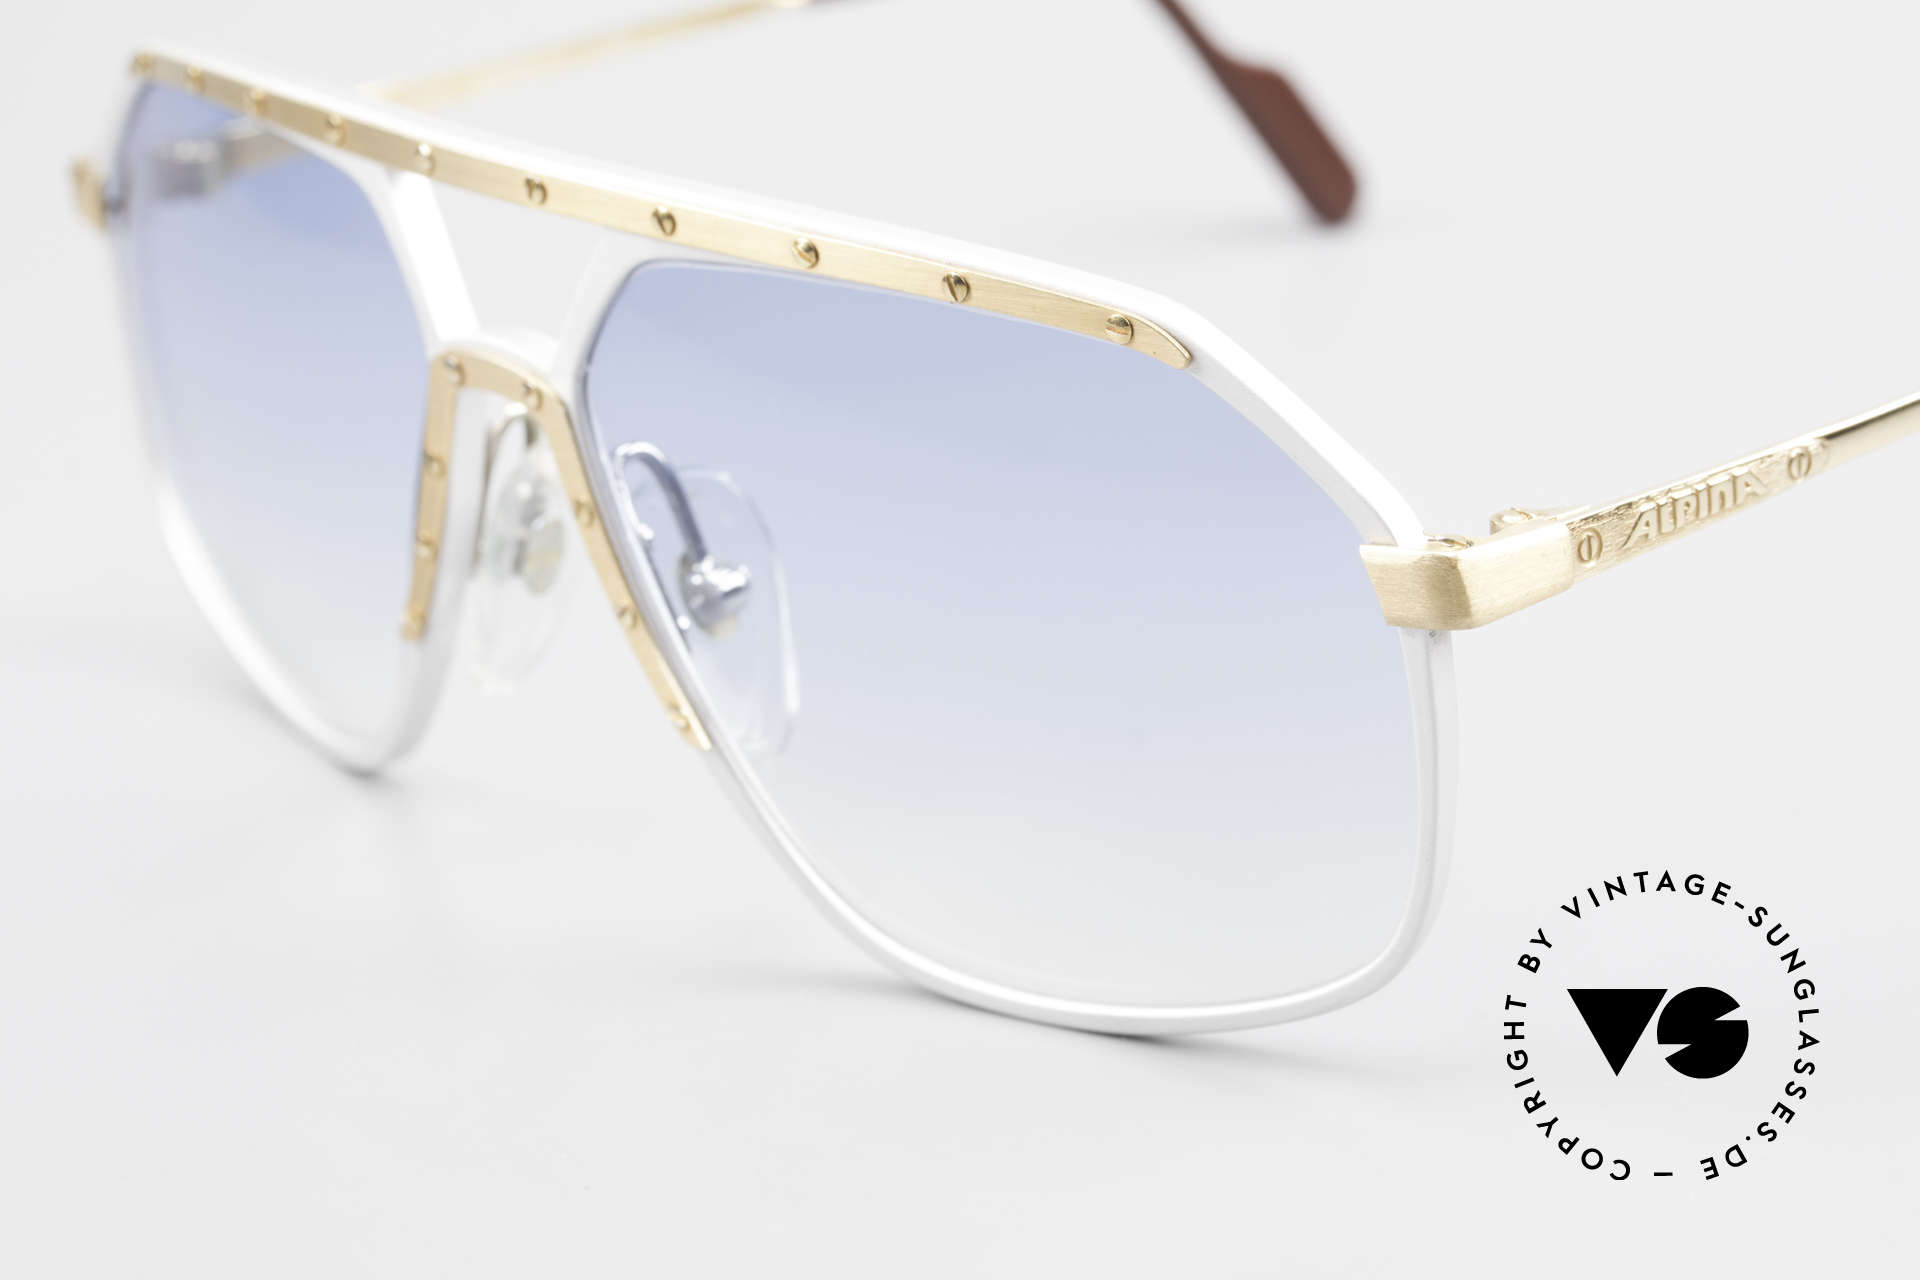 Alpina M6 Iconic 80's Sunglass Classic, the Alpina M6's were made between 1987 and 1991, Made for Men